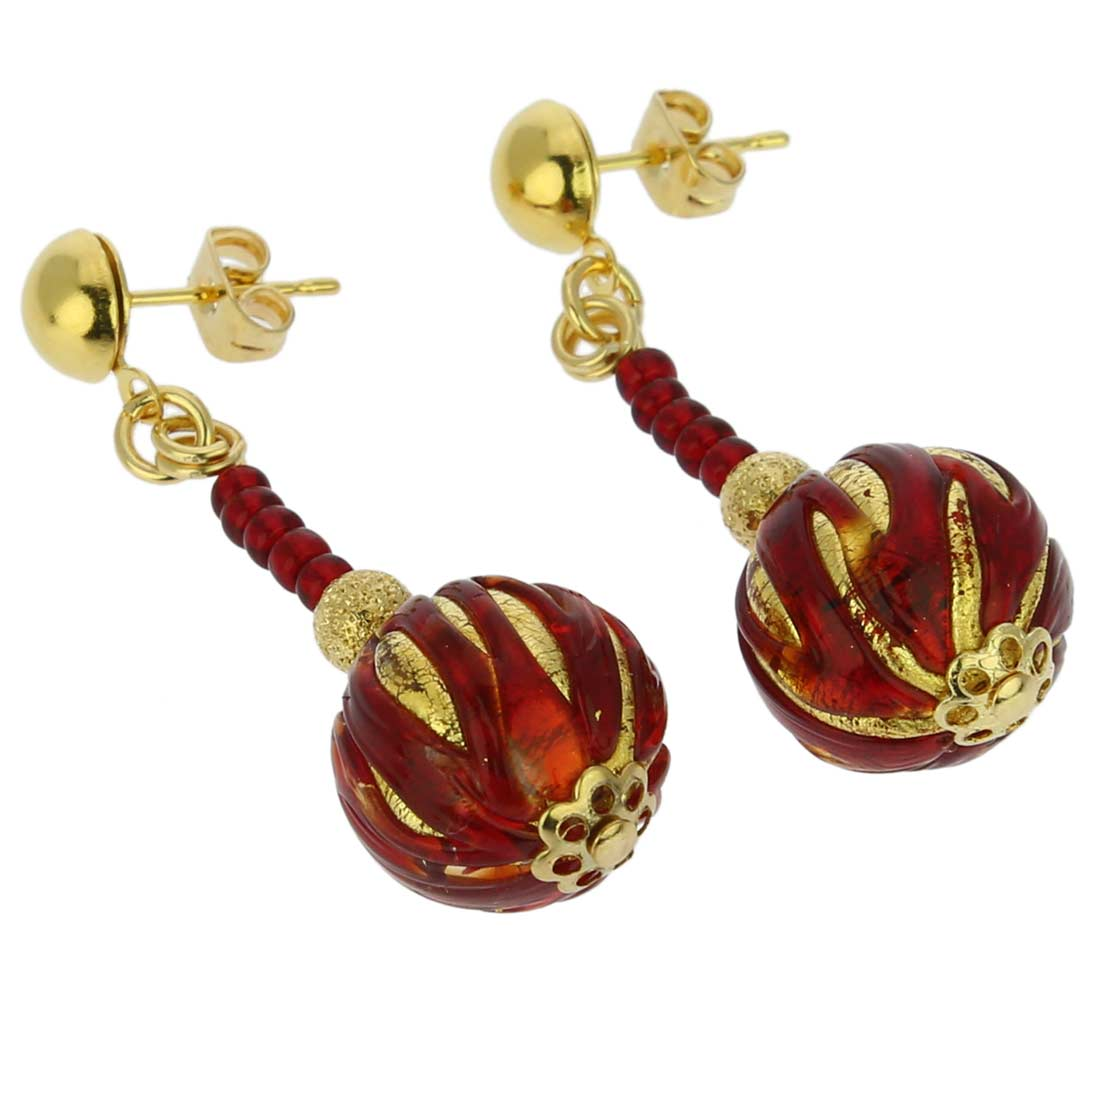 Pink Ruby Jewellery: Canaletto Earrings - Gold Ruby Red